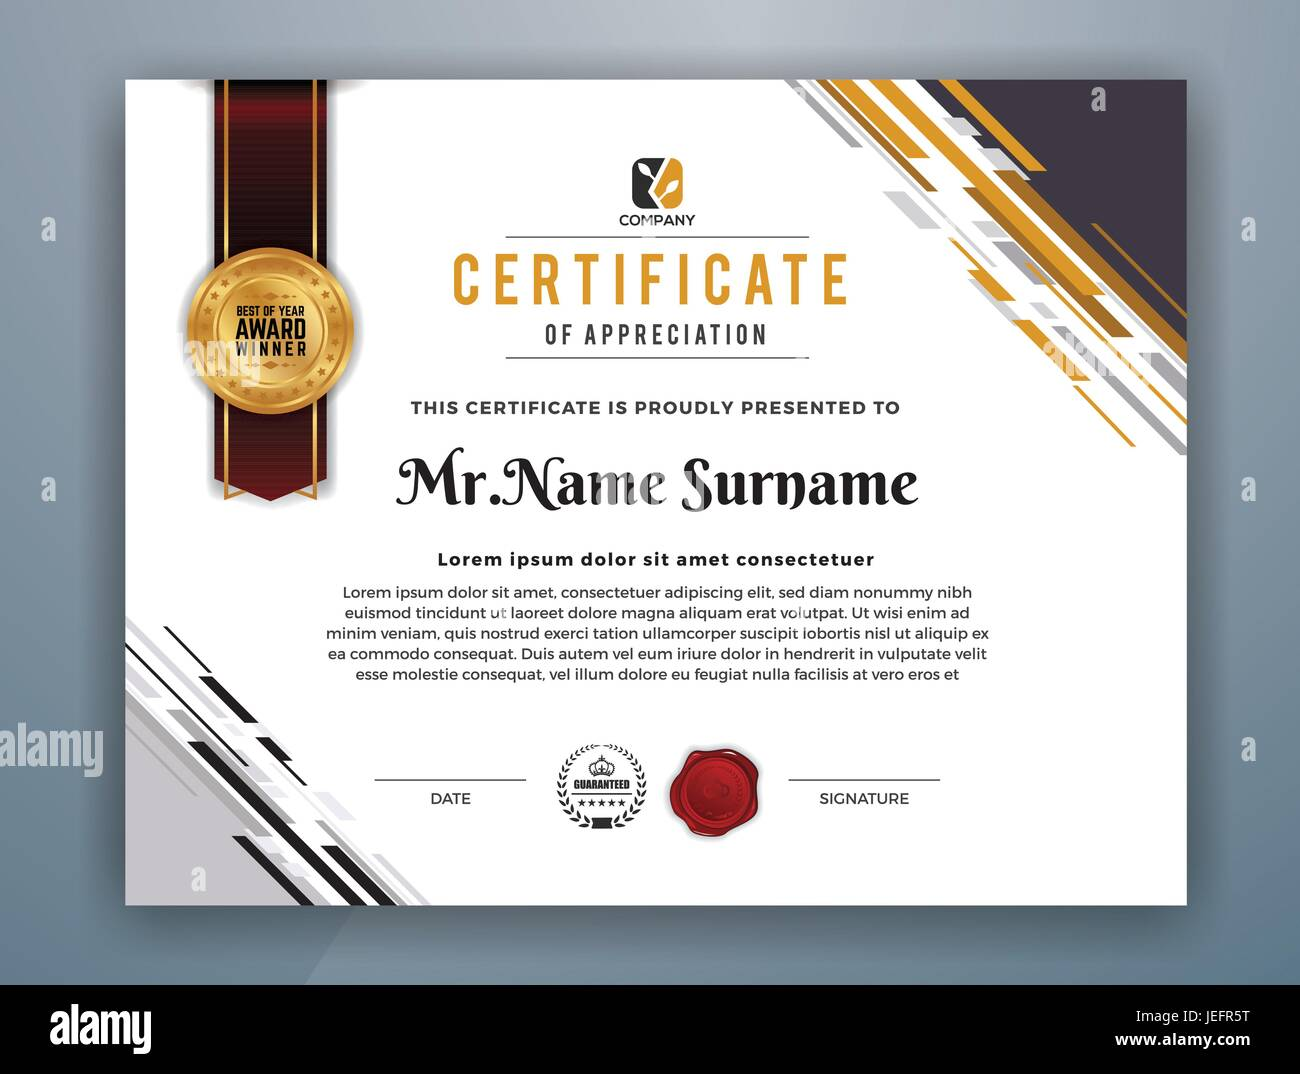 Certificate Appreciation Medal Ribbon High Resolution Stock For Professional Award Certificate Template